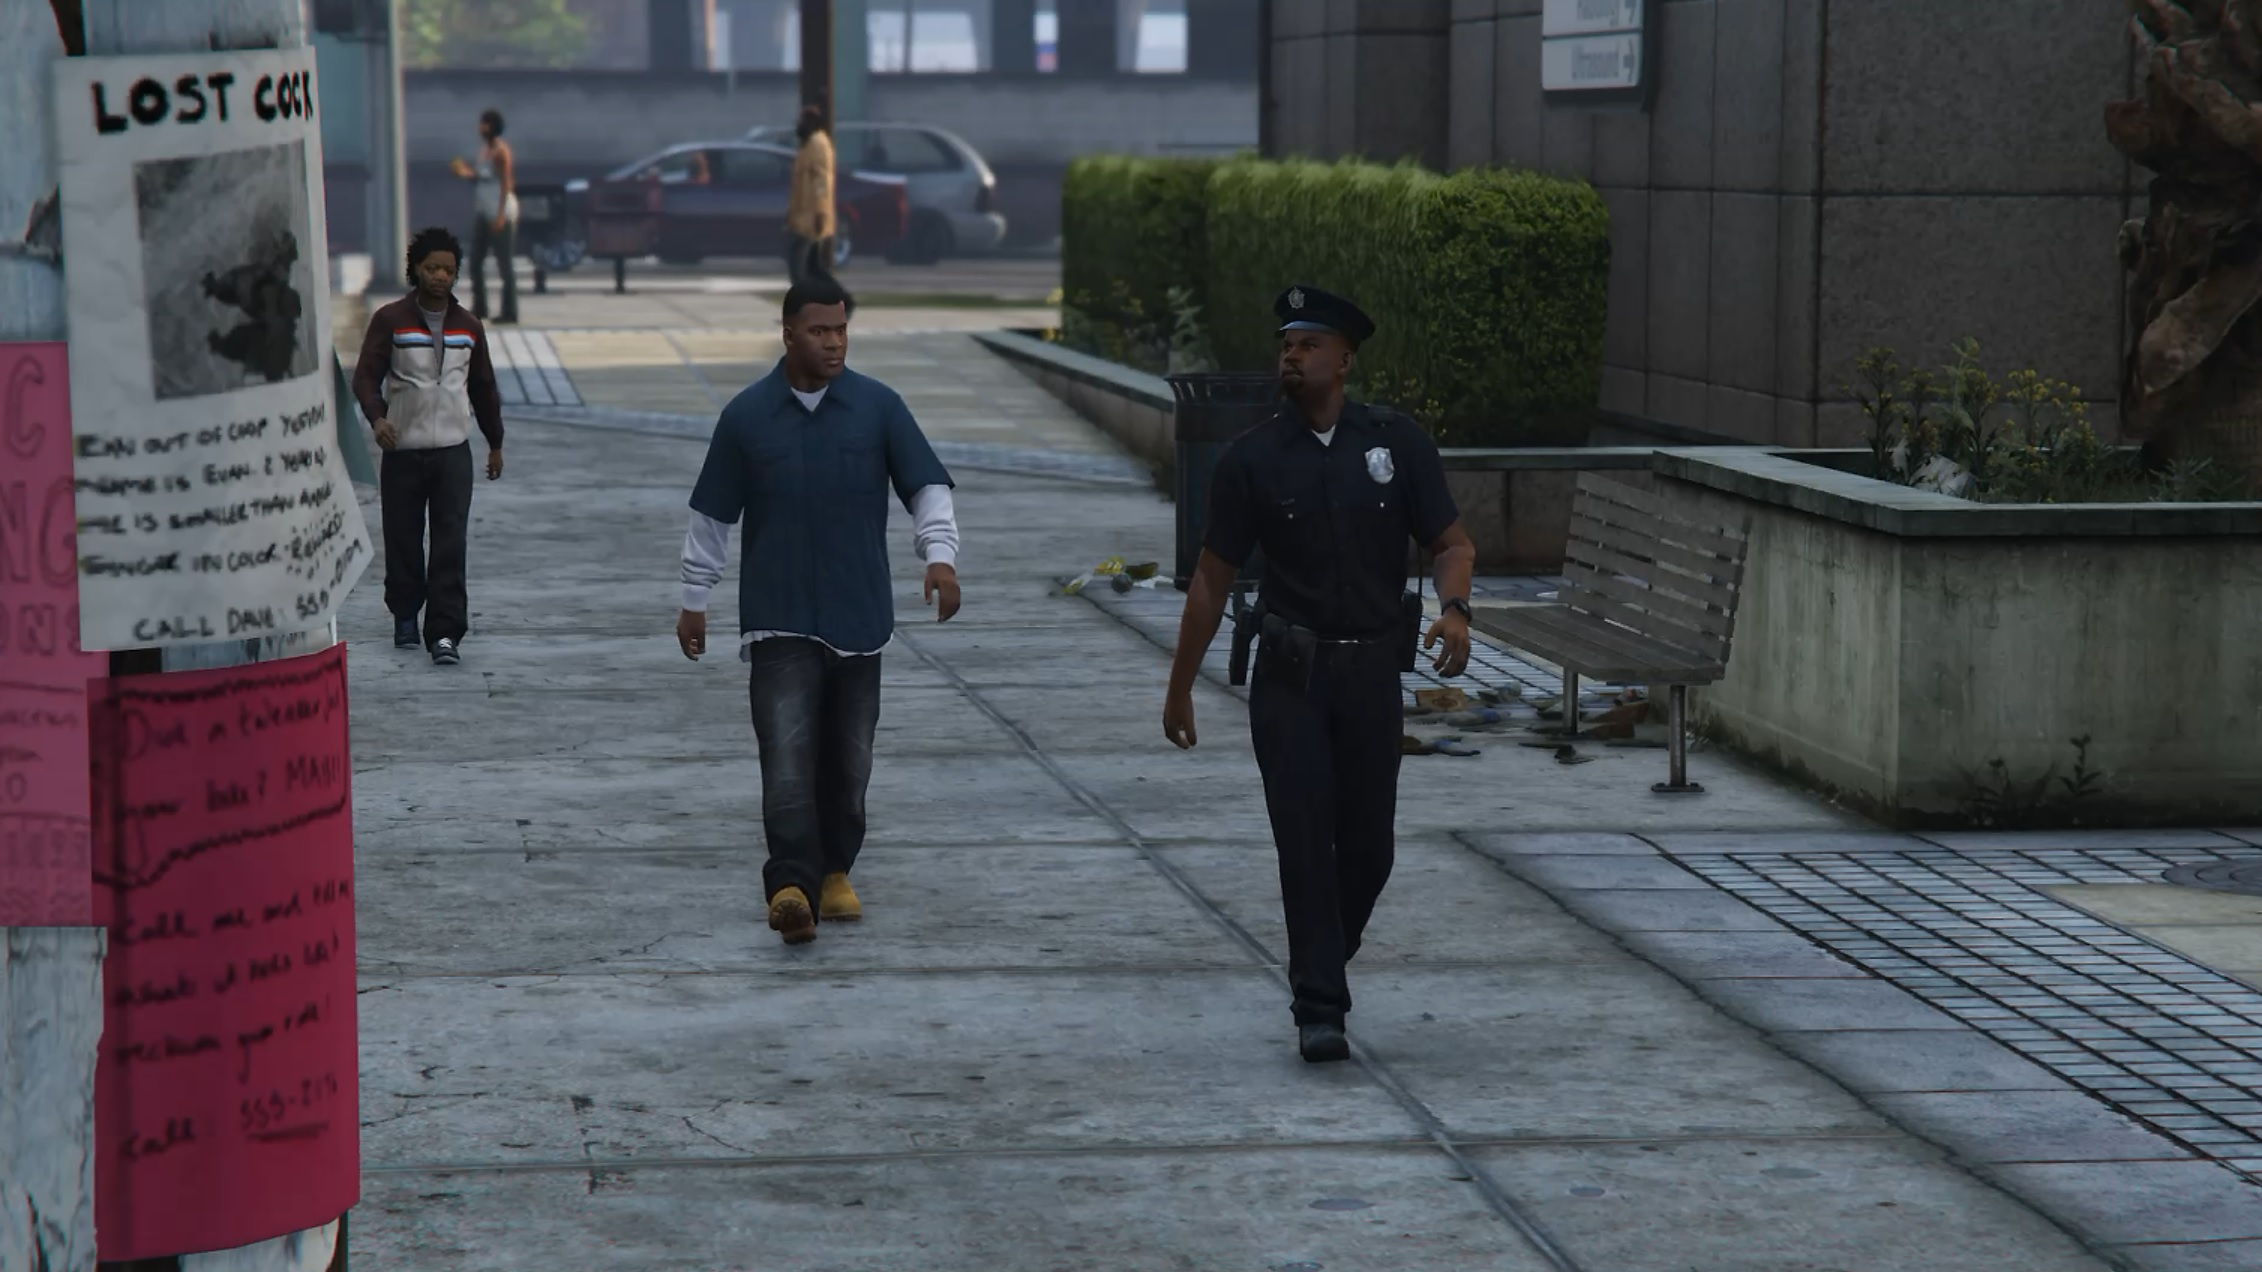 patrolling police   gang activity